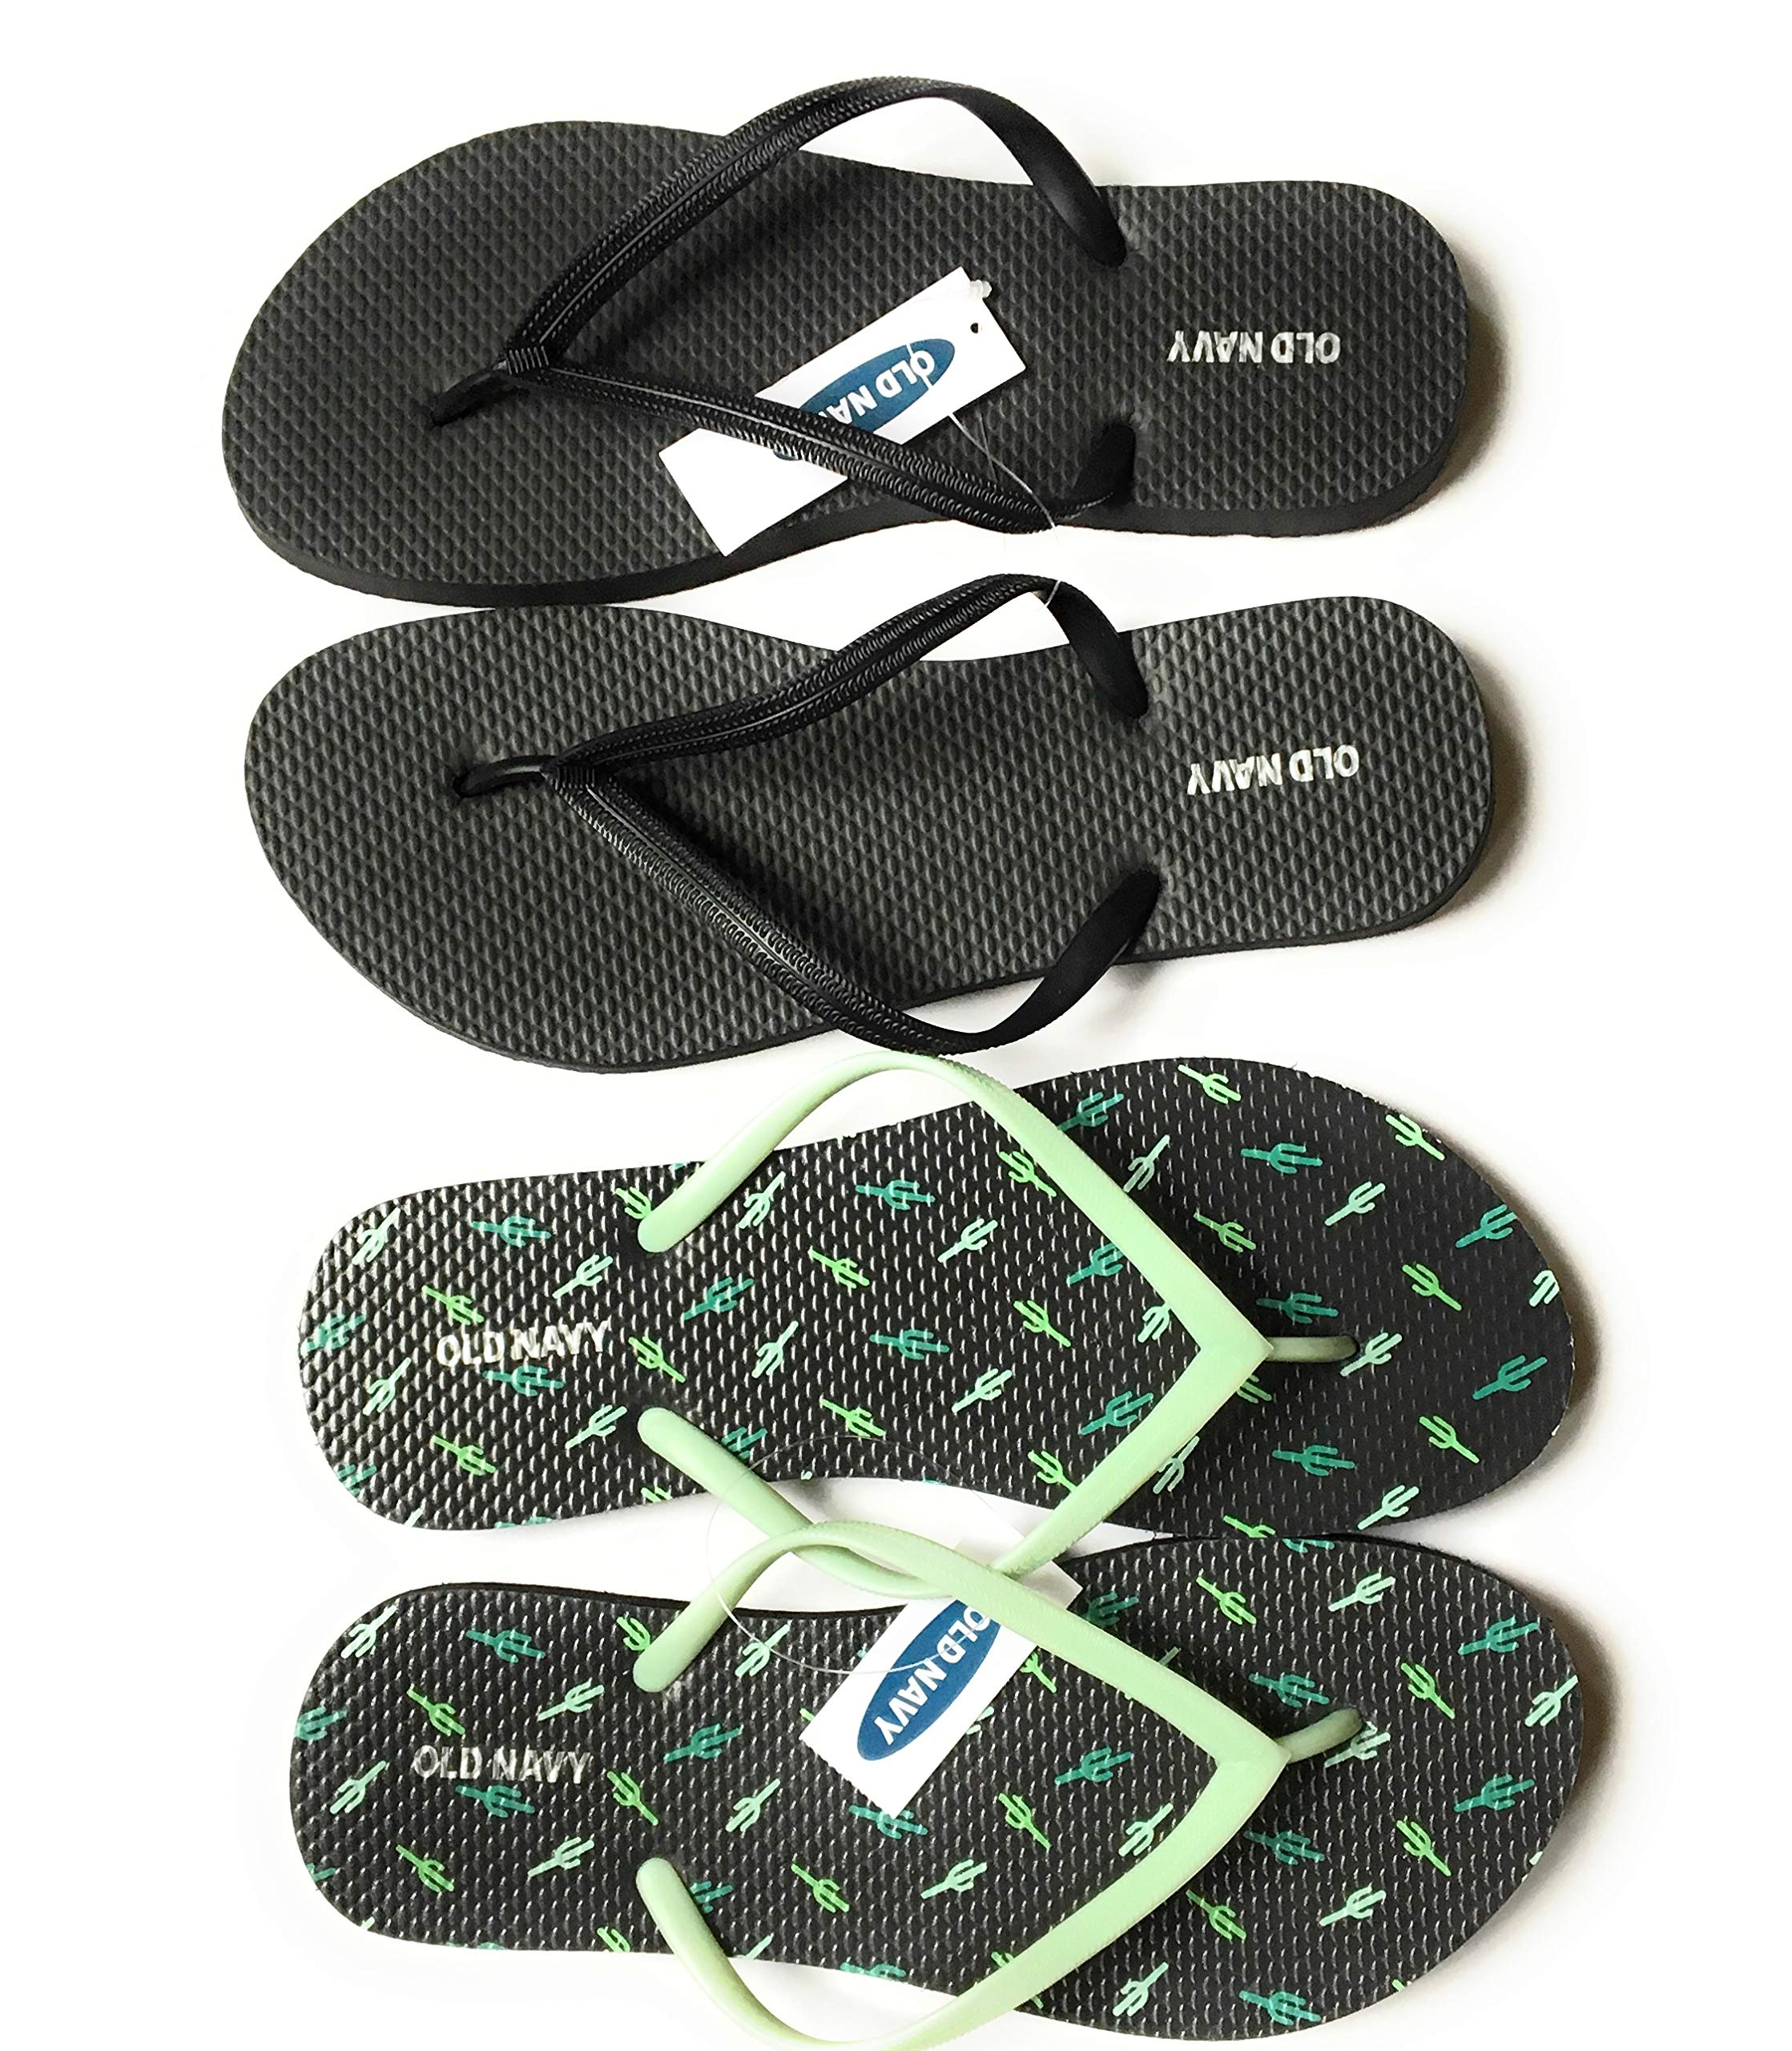 Old Navy Flip Flop Sandals for Woman, Great for Beach or Casual Wear (8, Cactus and Black), (2-Pair)